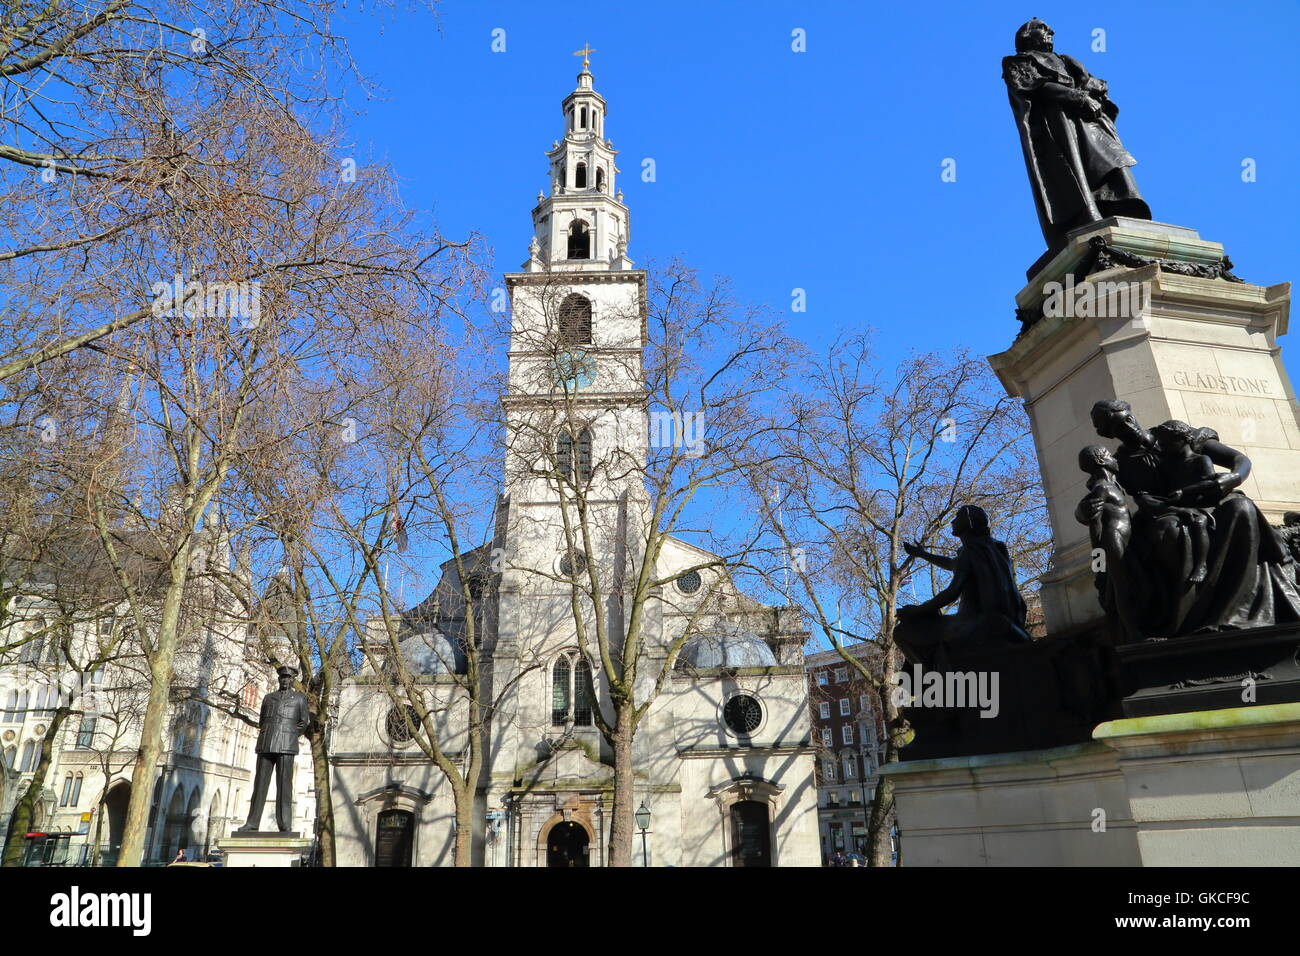 St Clement Danes church with the statue of William Ewart Gladstone in the foreground, London, Great Britain - Stock Image